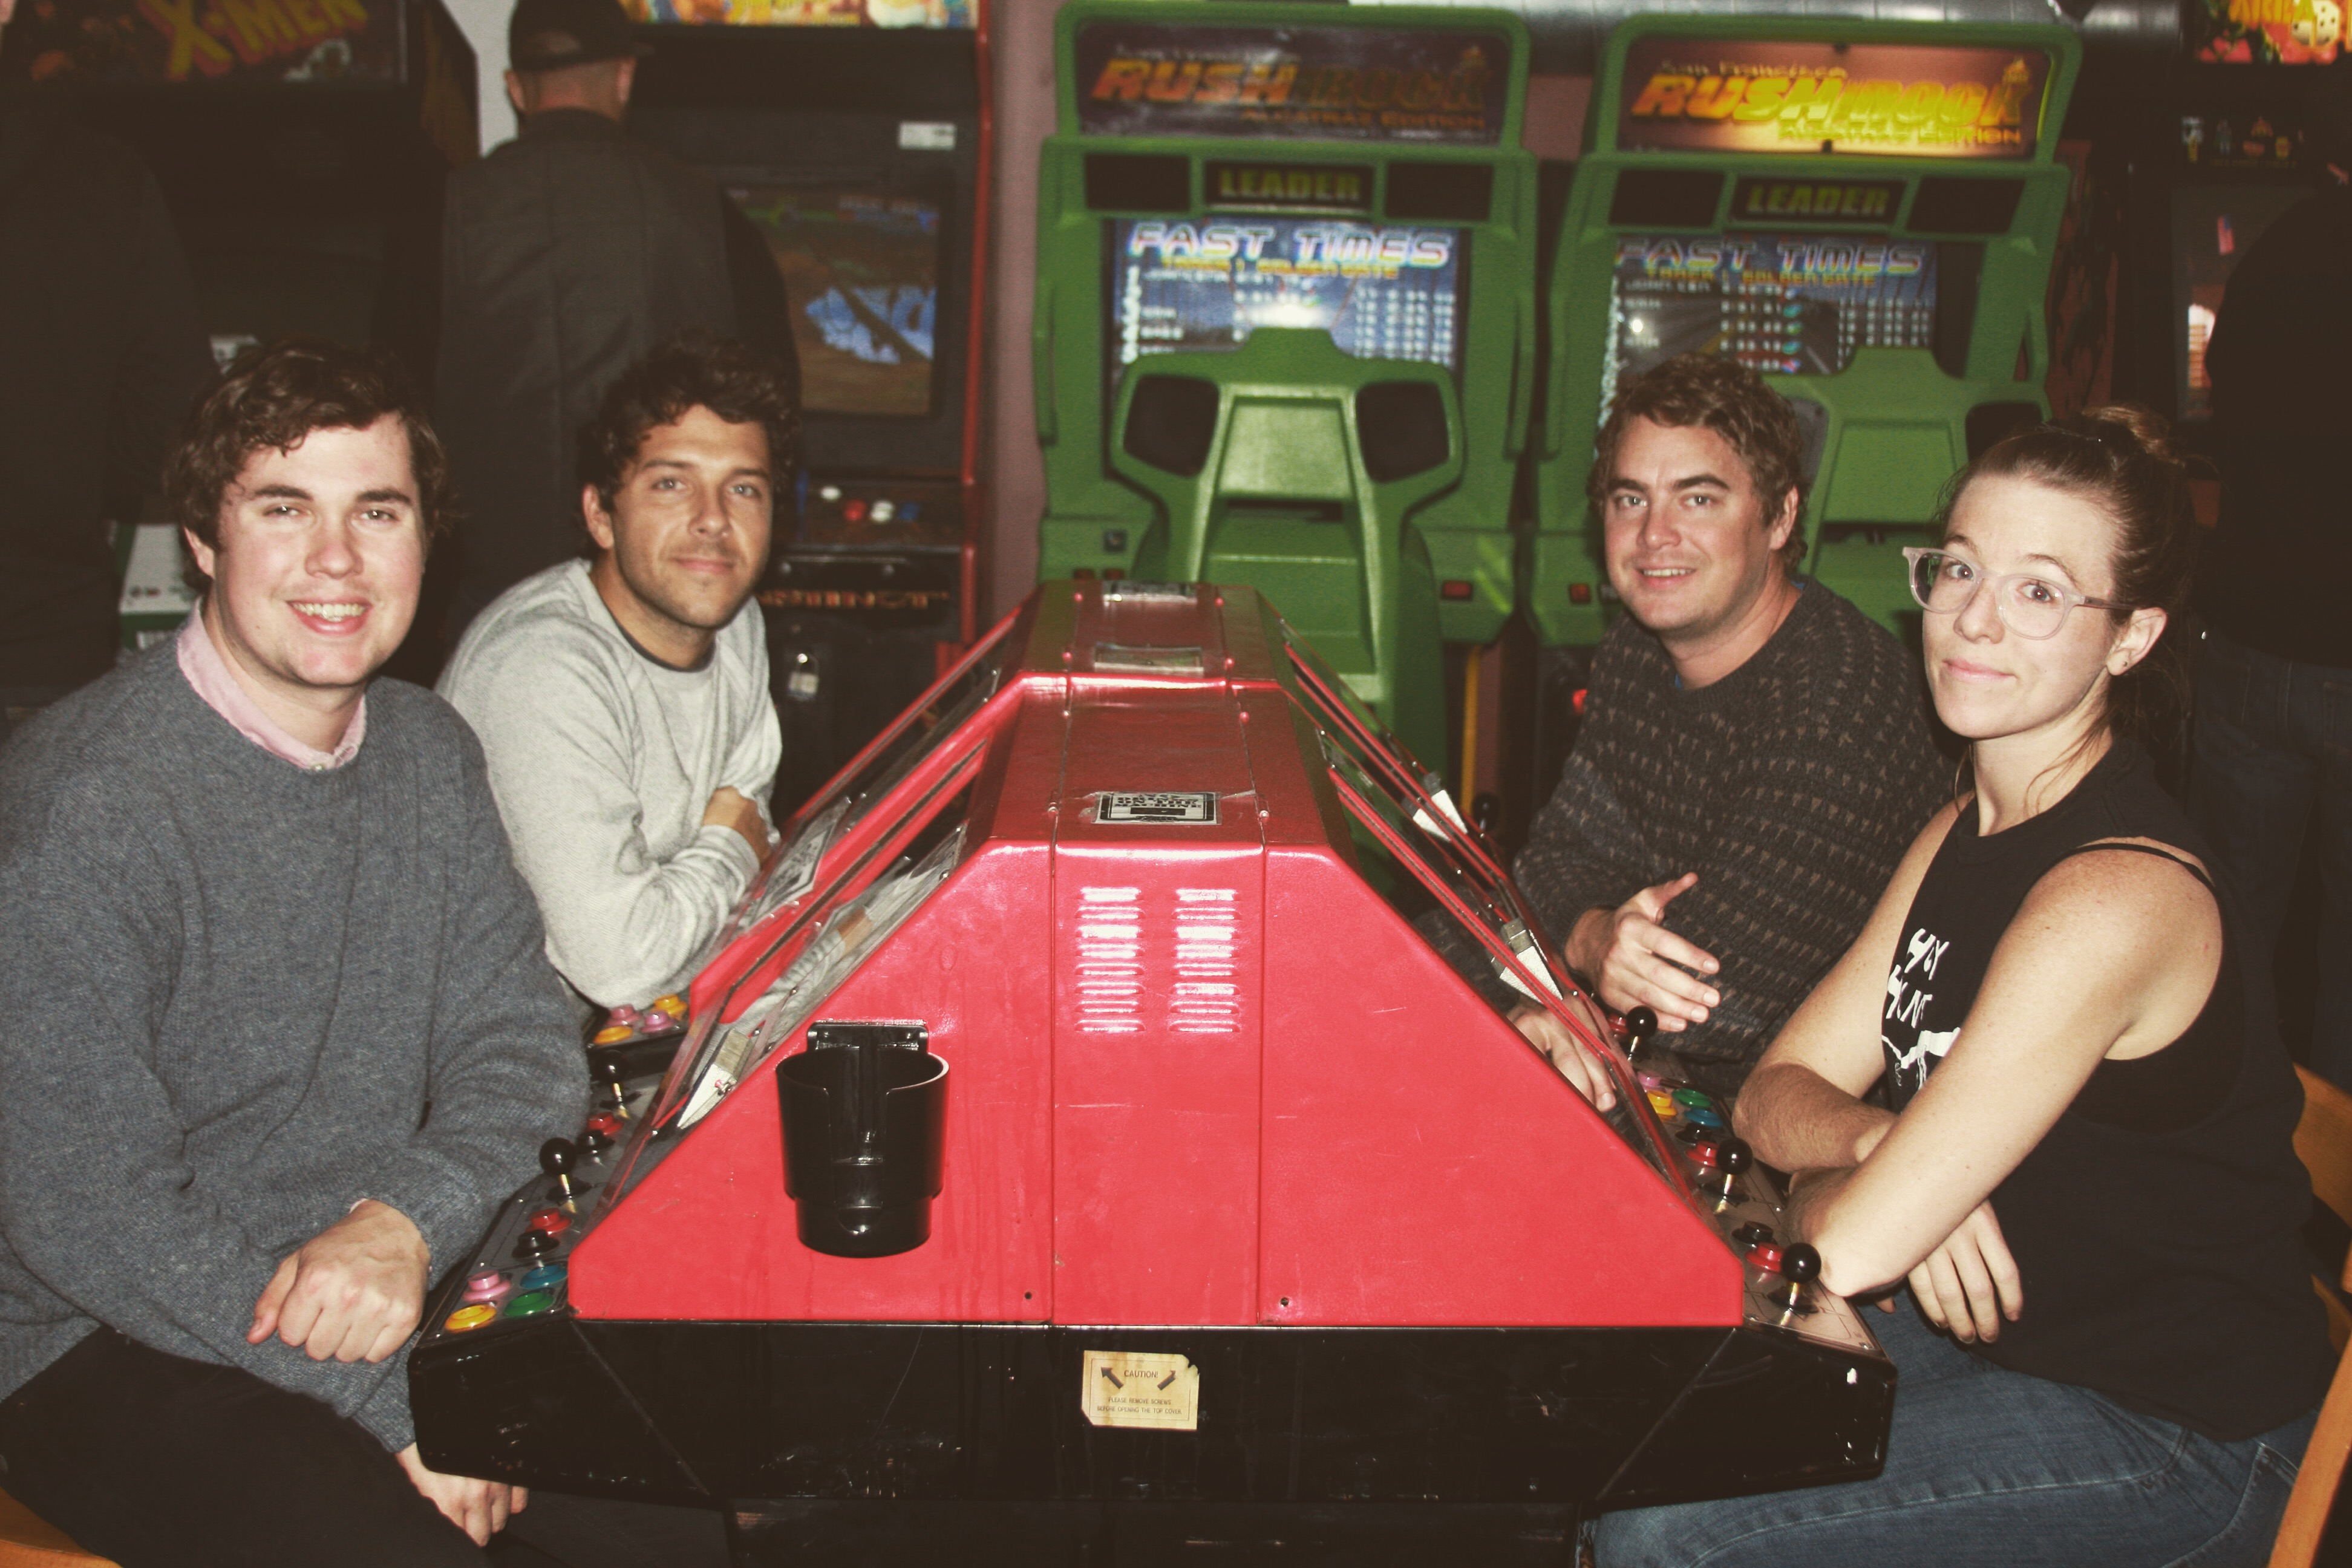 Band members from left to right: John Paul Pitts, Mike Mcleary, Tyler Schwarz, and Lindsey Mills.